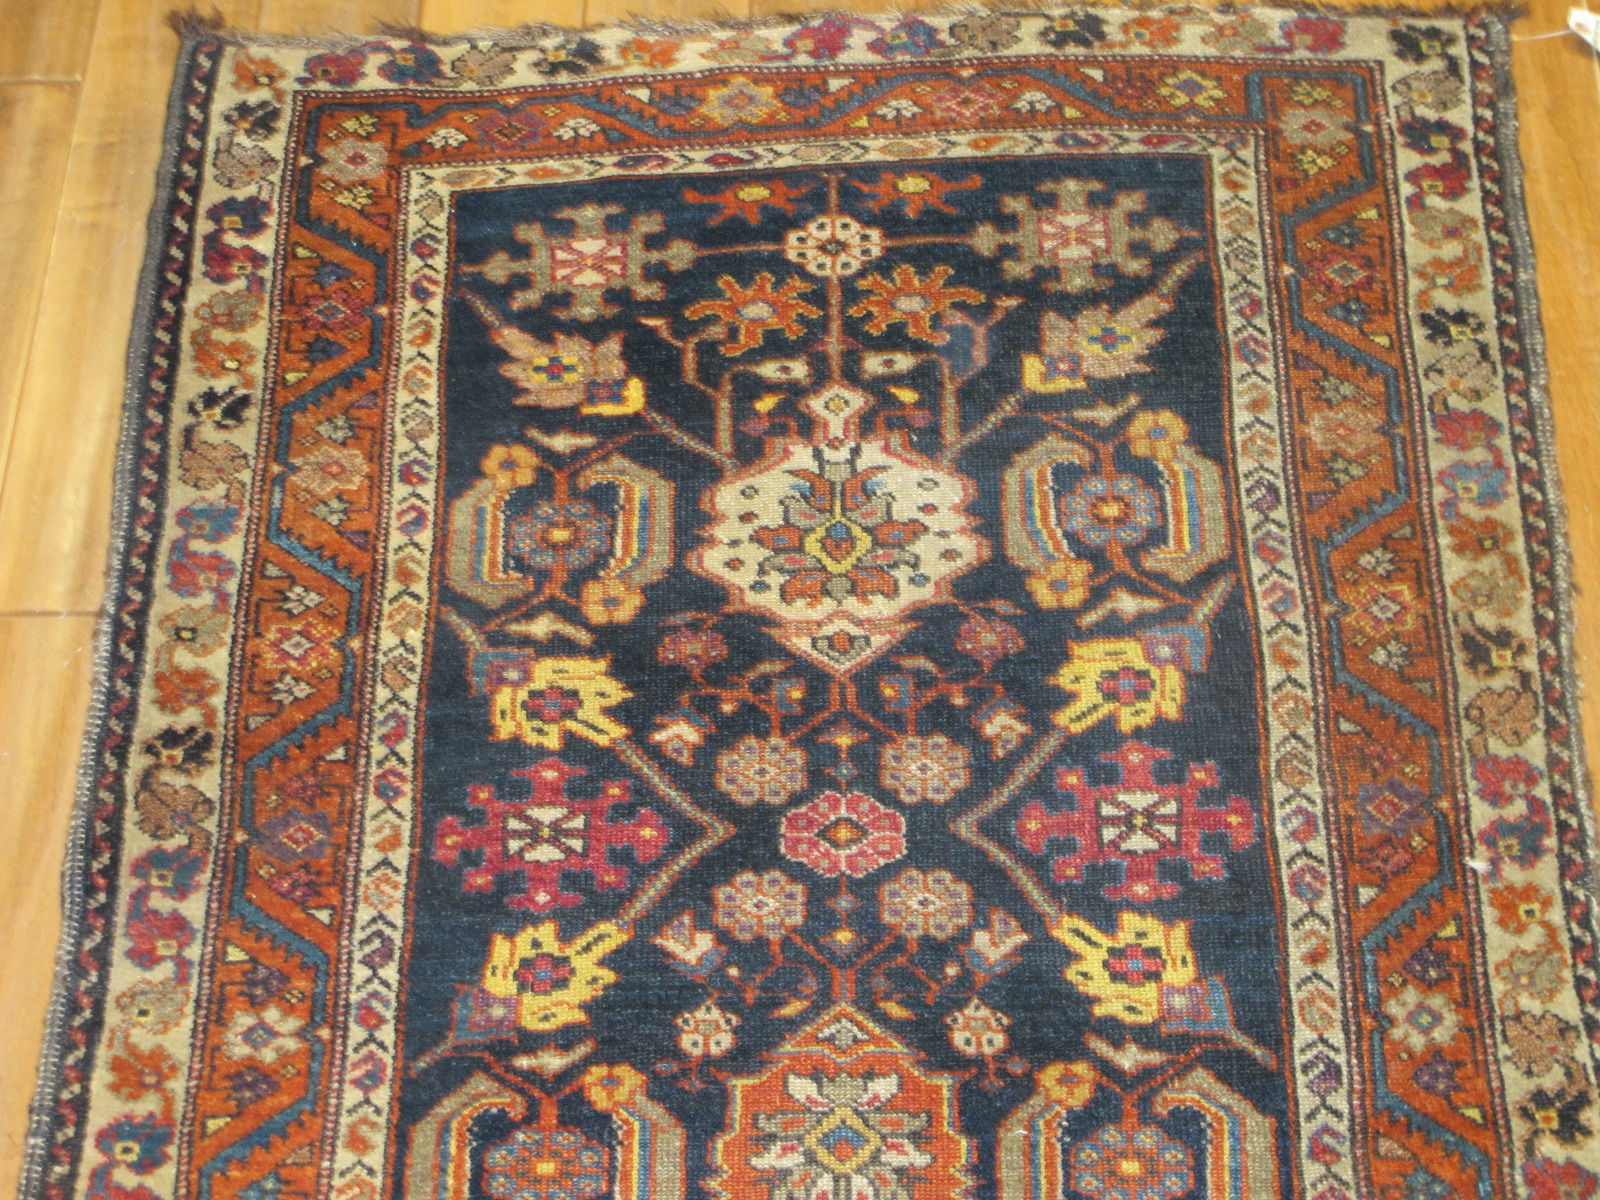 23681-antique-persian-kurd-runner-34x124-2